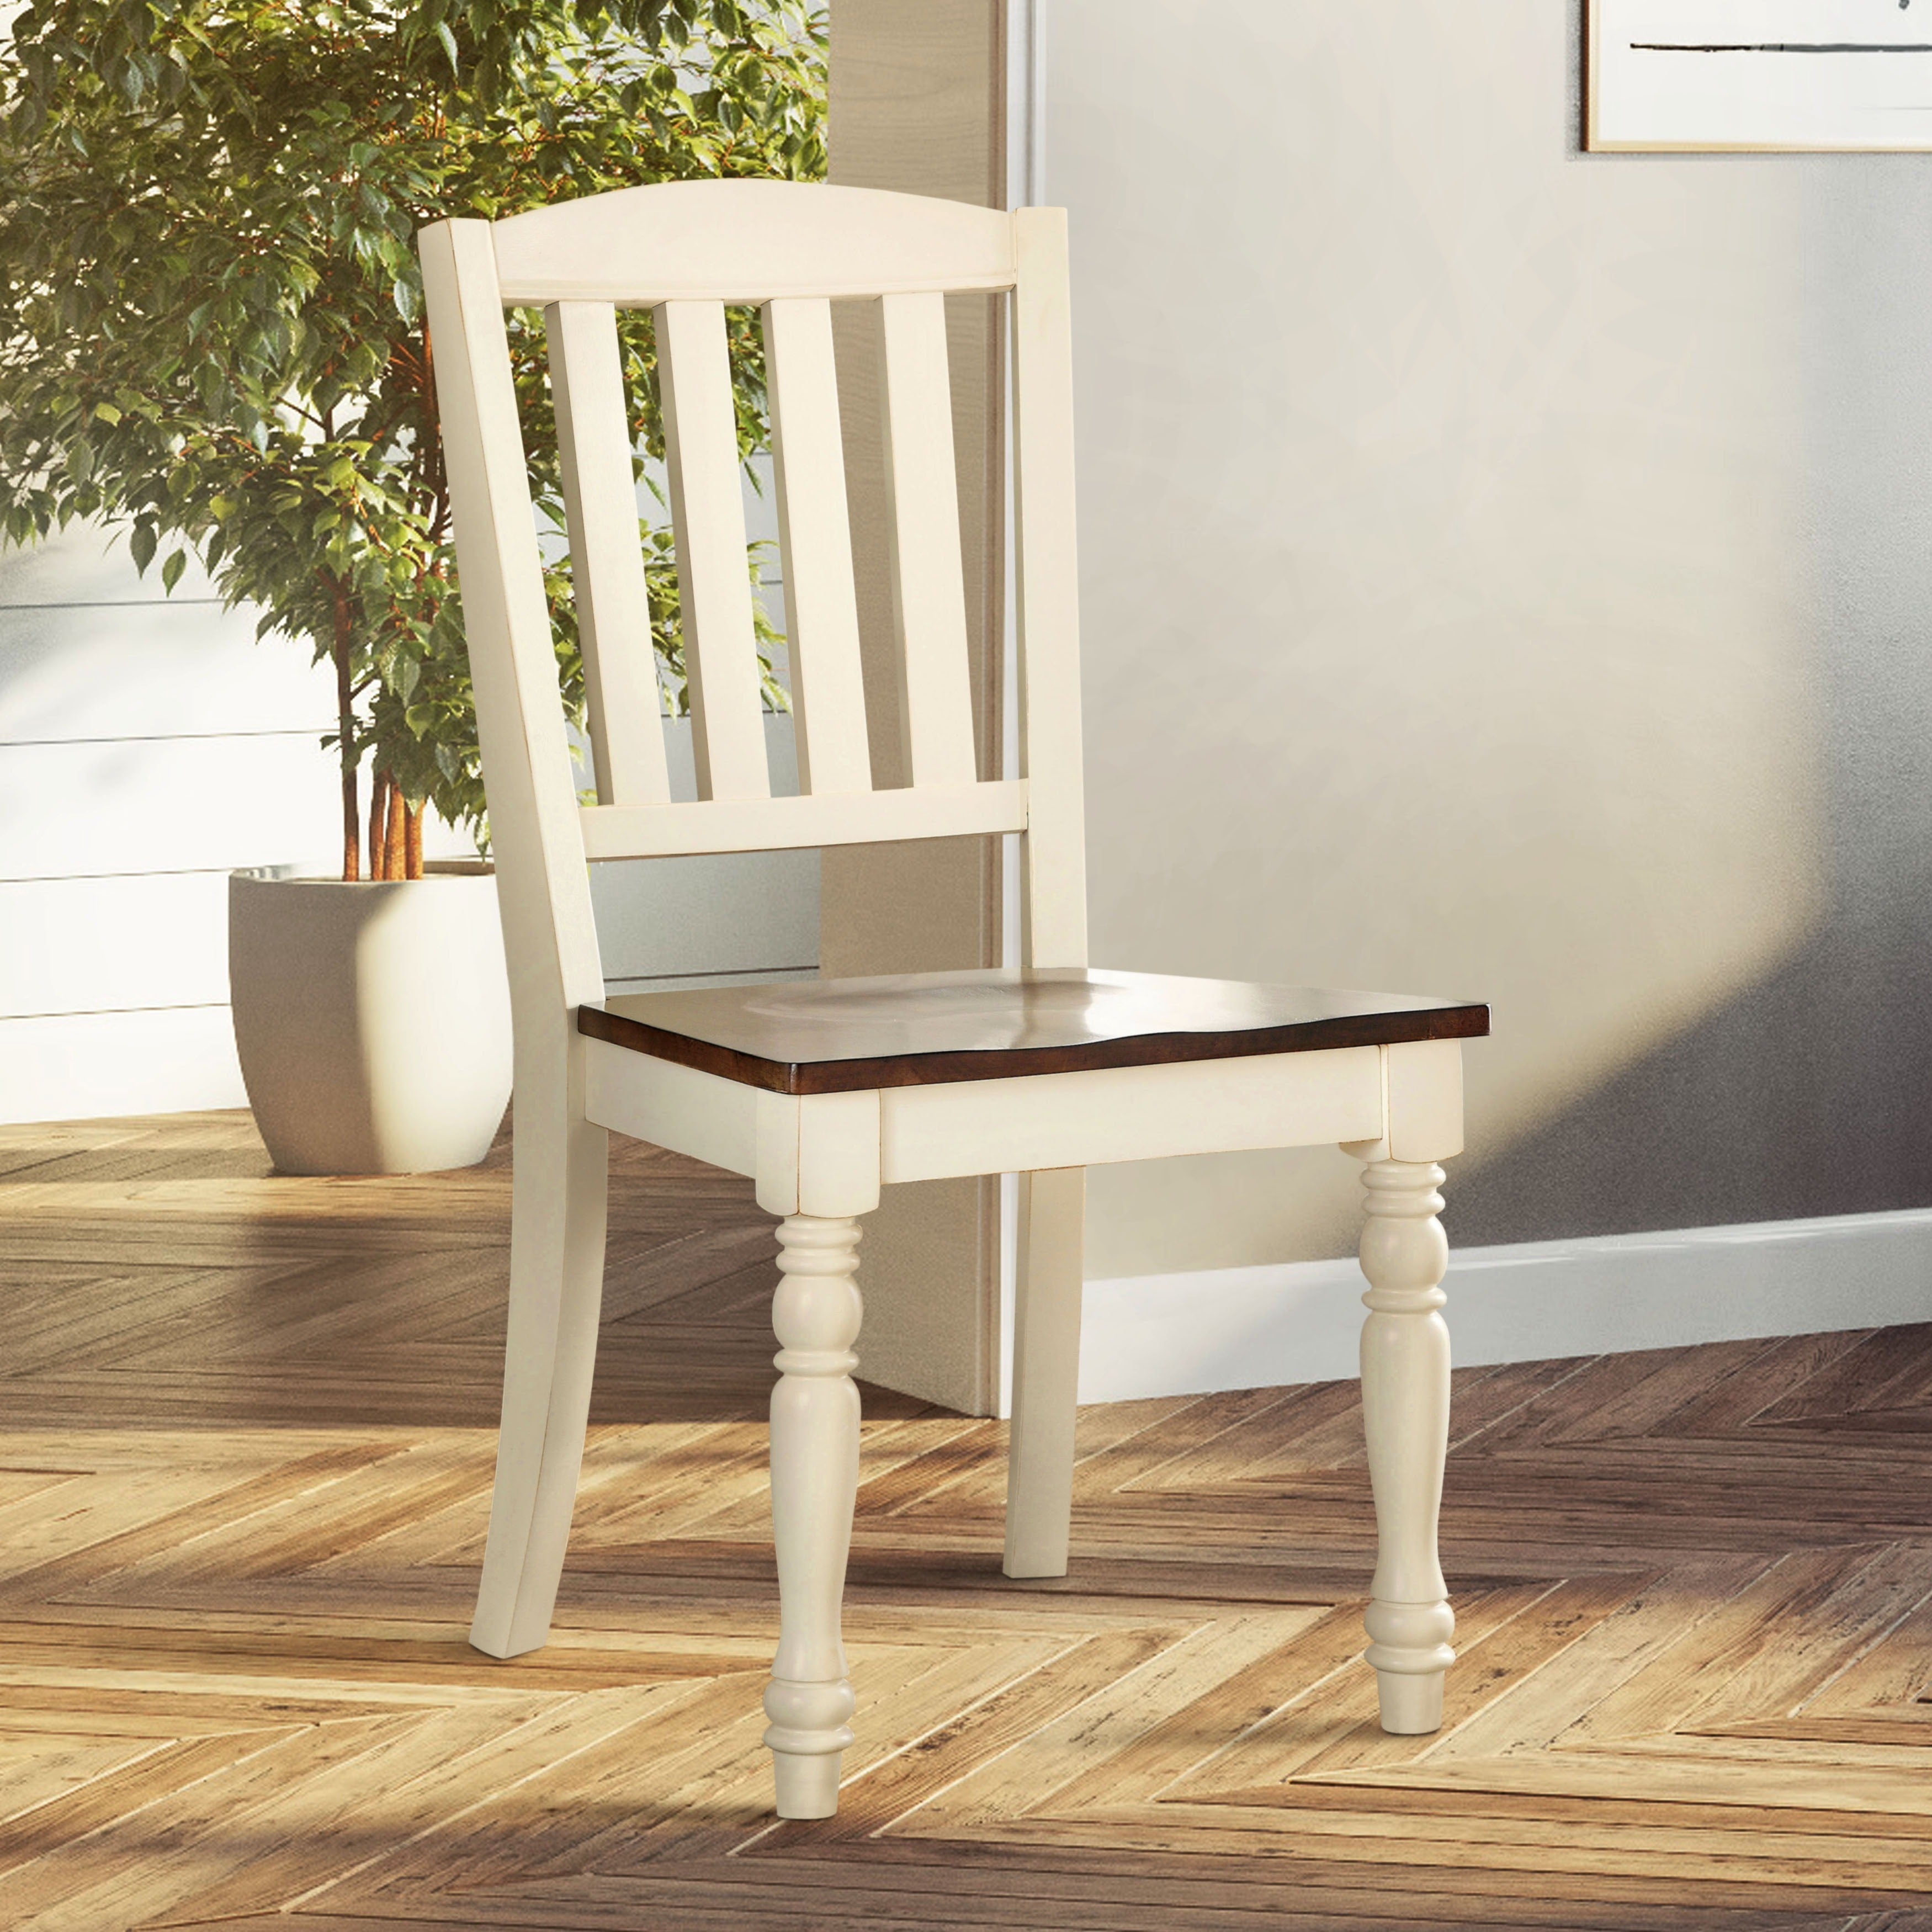 The Gray Barn Castlefarm Cottage Style 2 Tone Dining Chair Set Of 2 20 W X 23 D X 40 H Seat Ht 18 Seat Dp 17 1 2